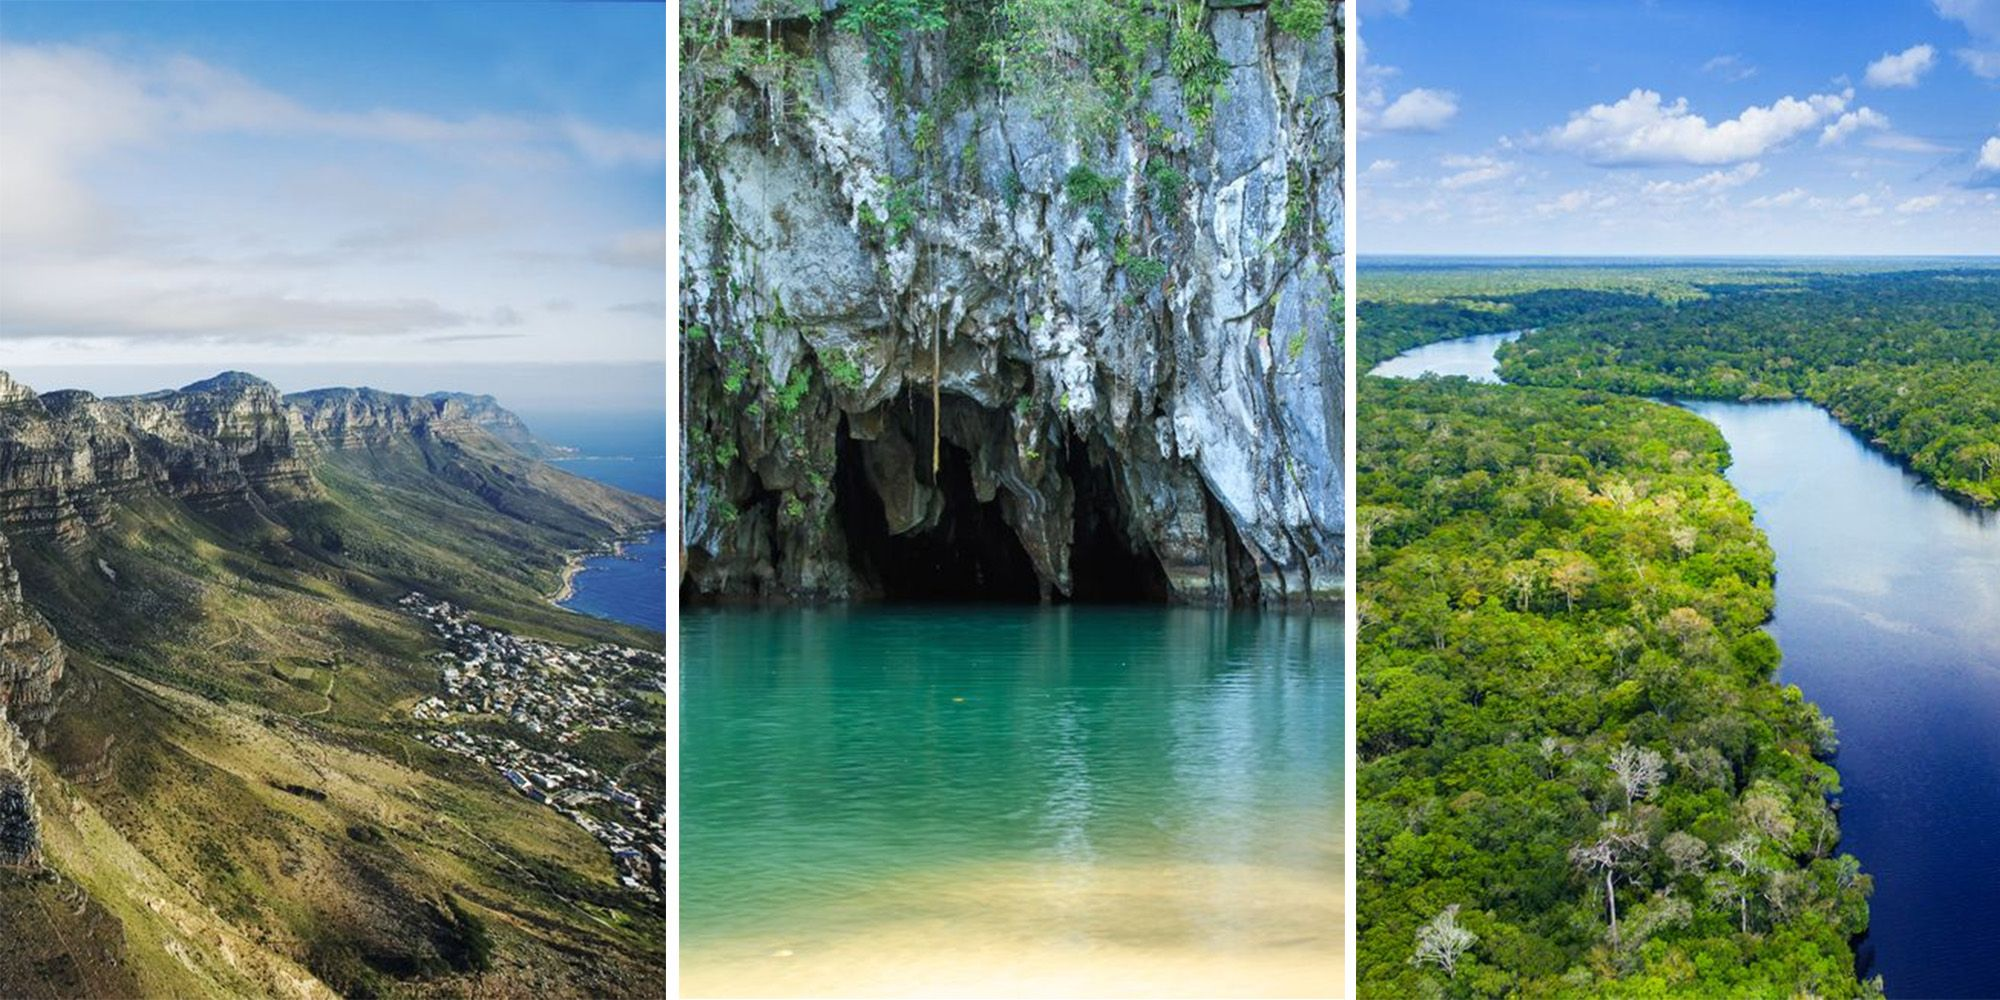 The 7 natural wonders of the world you need to see before you die